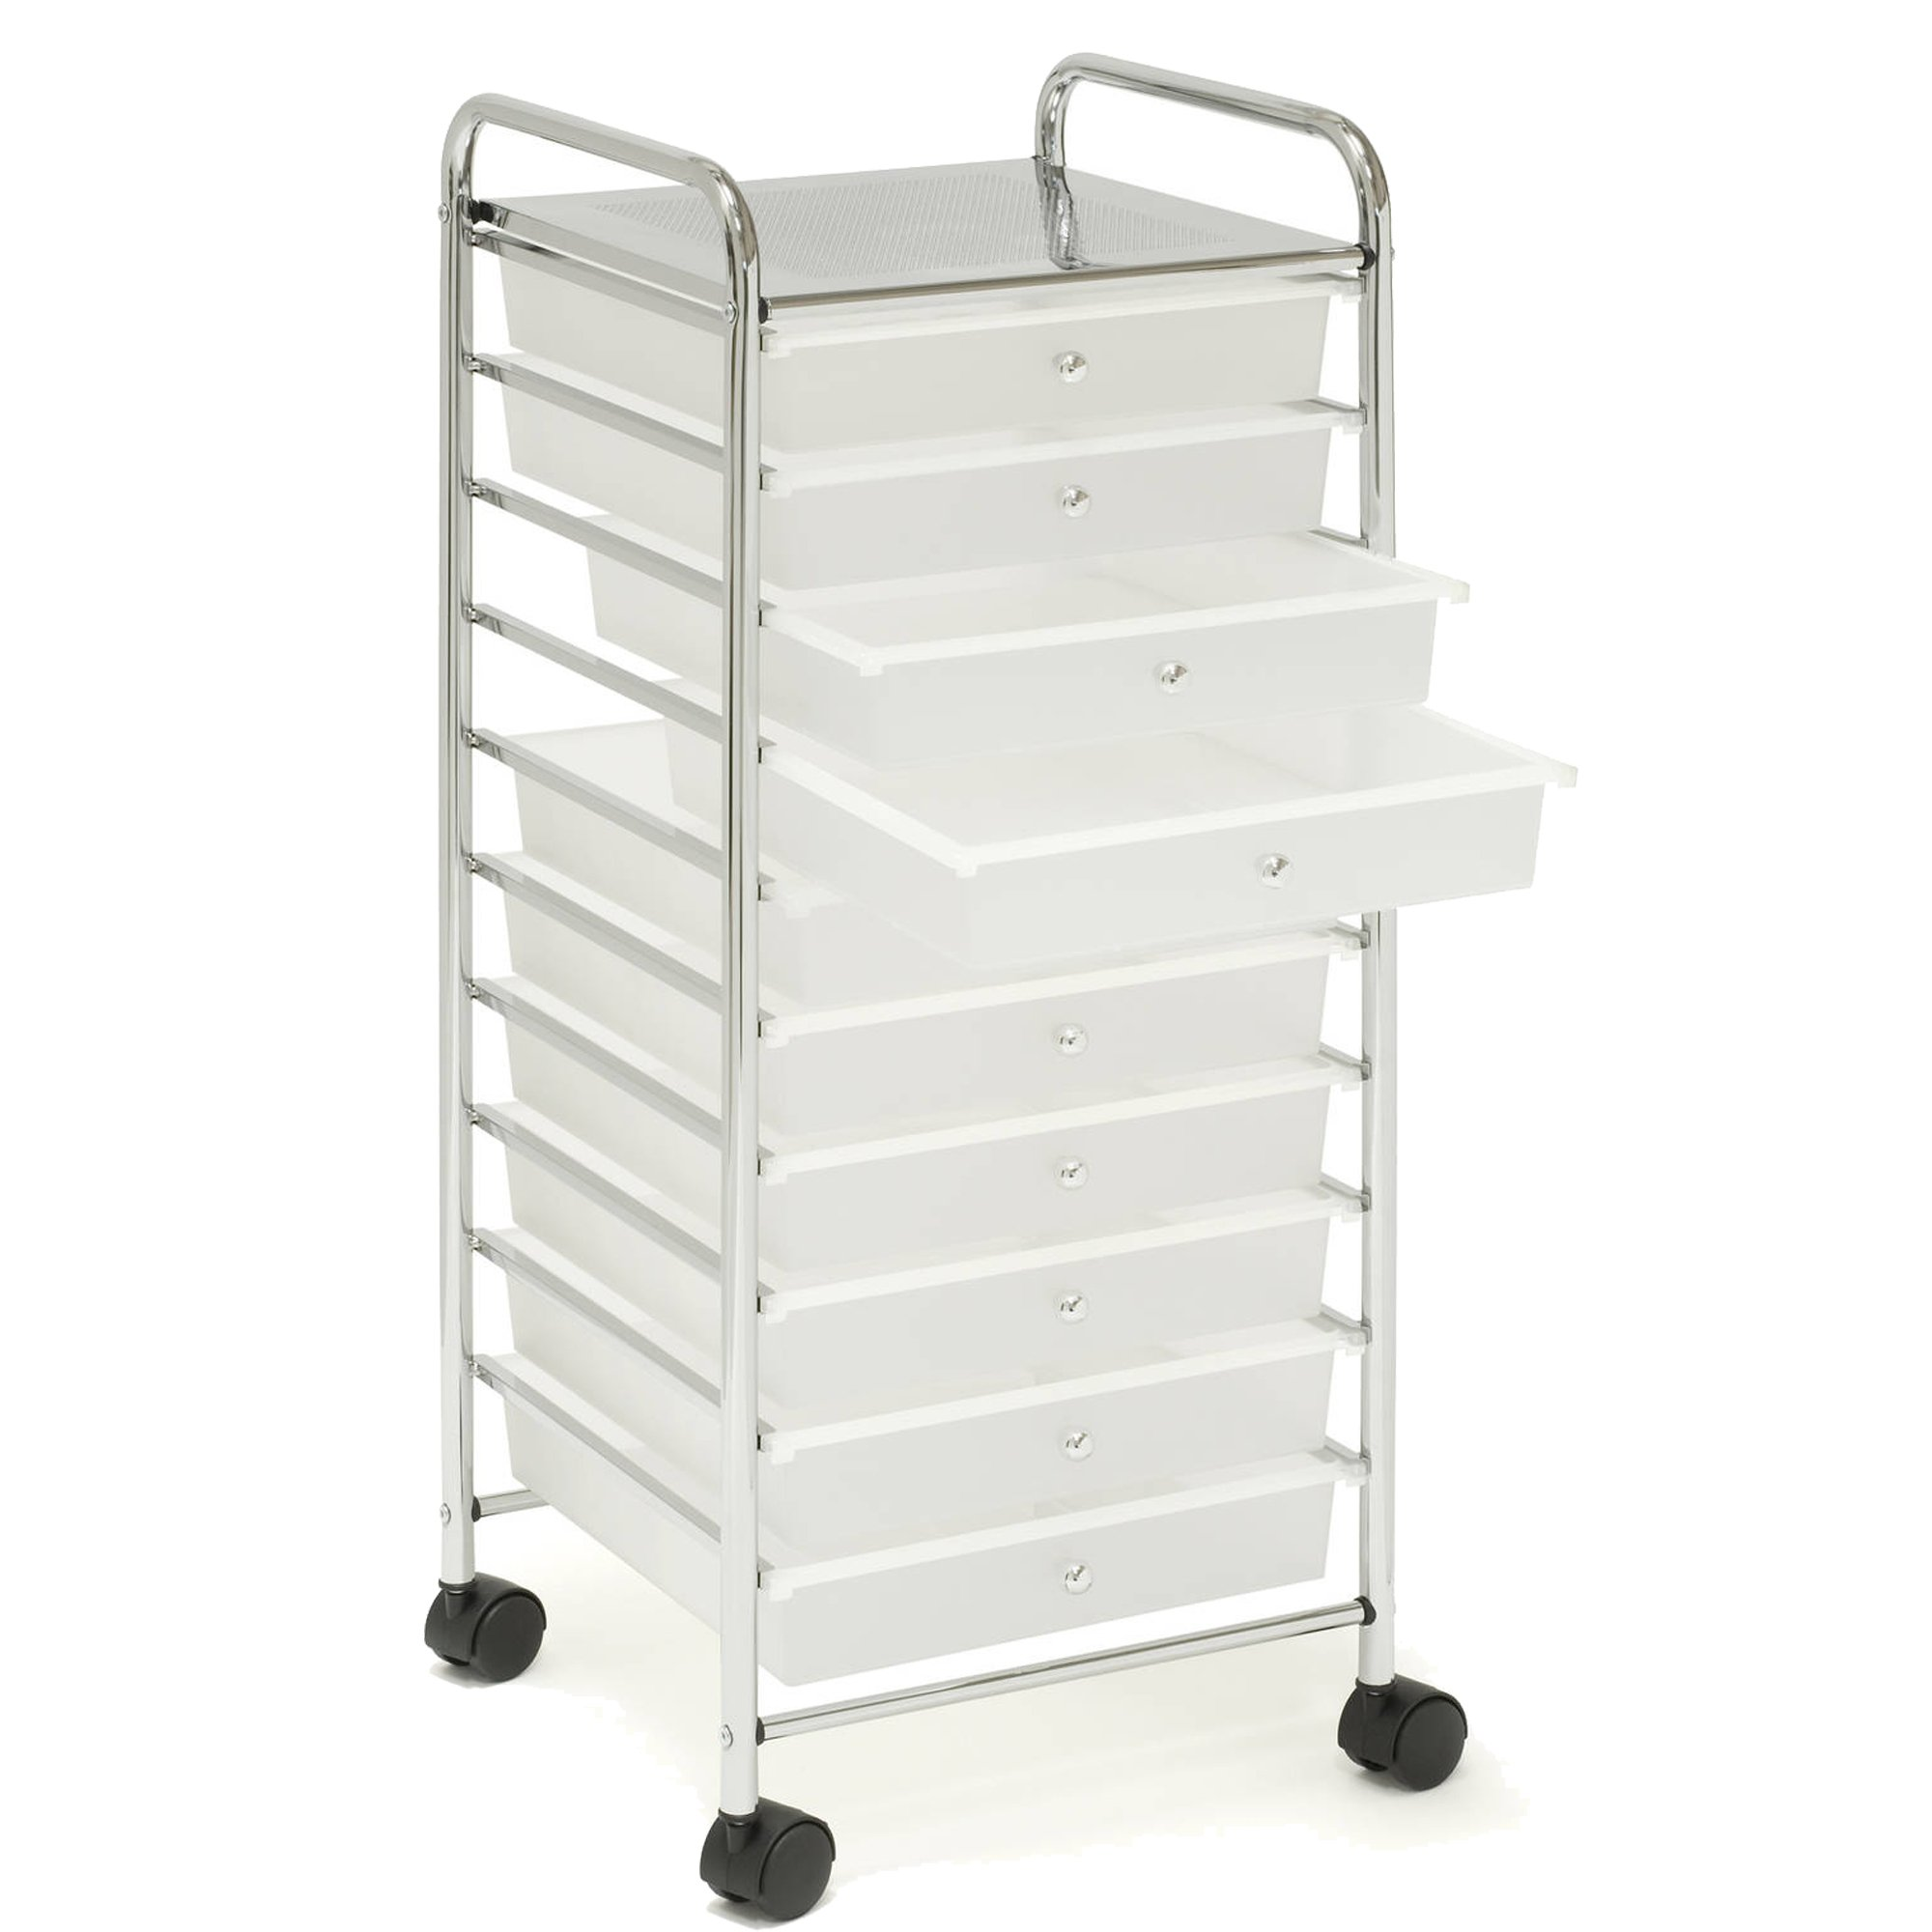 Seville Classics Large 10-Drawer Storage Organizer Utility Cart, Frosted White by Seville Classics